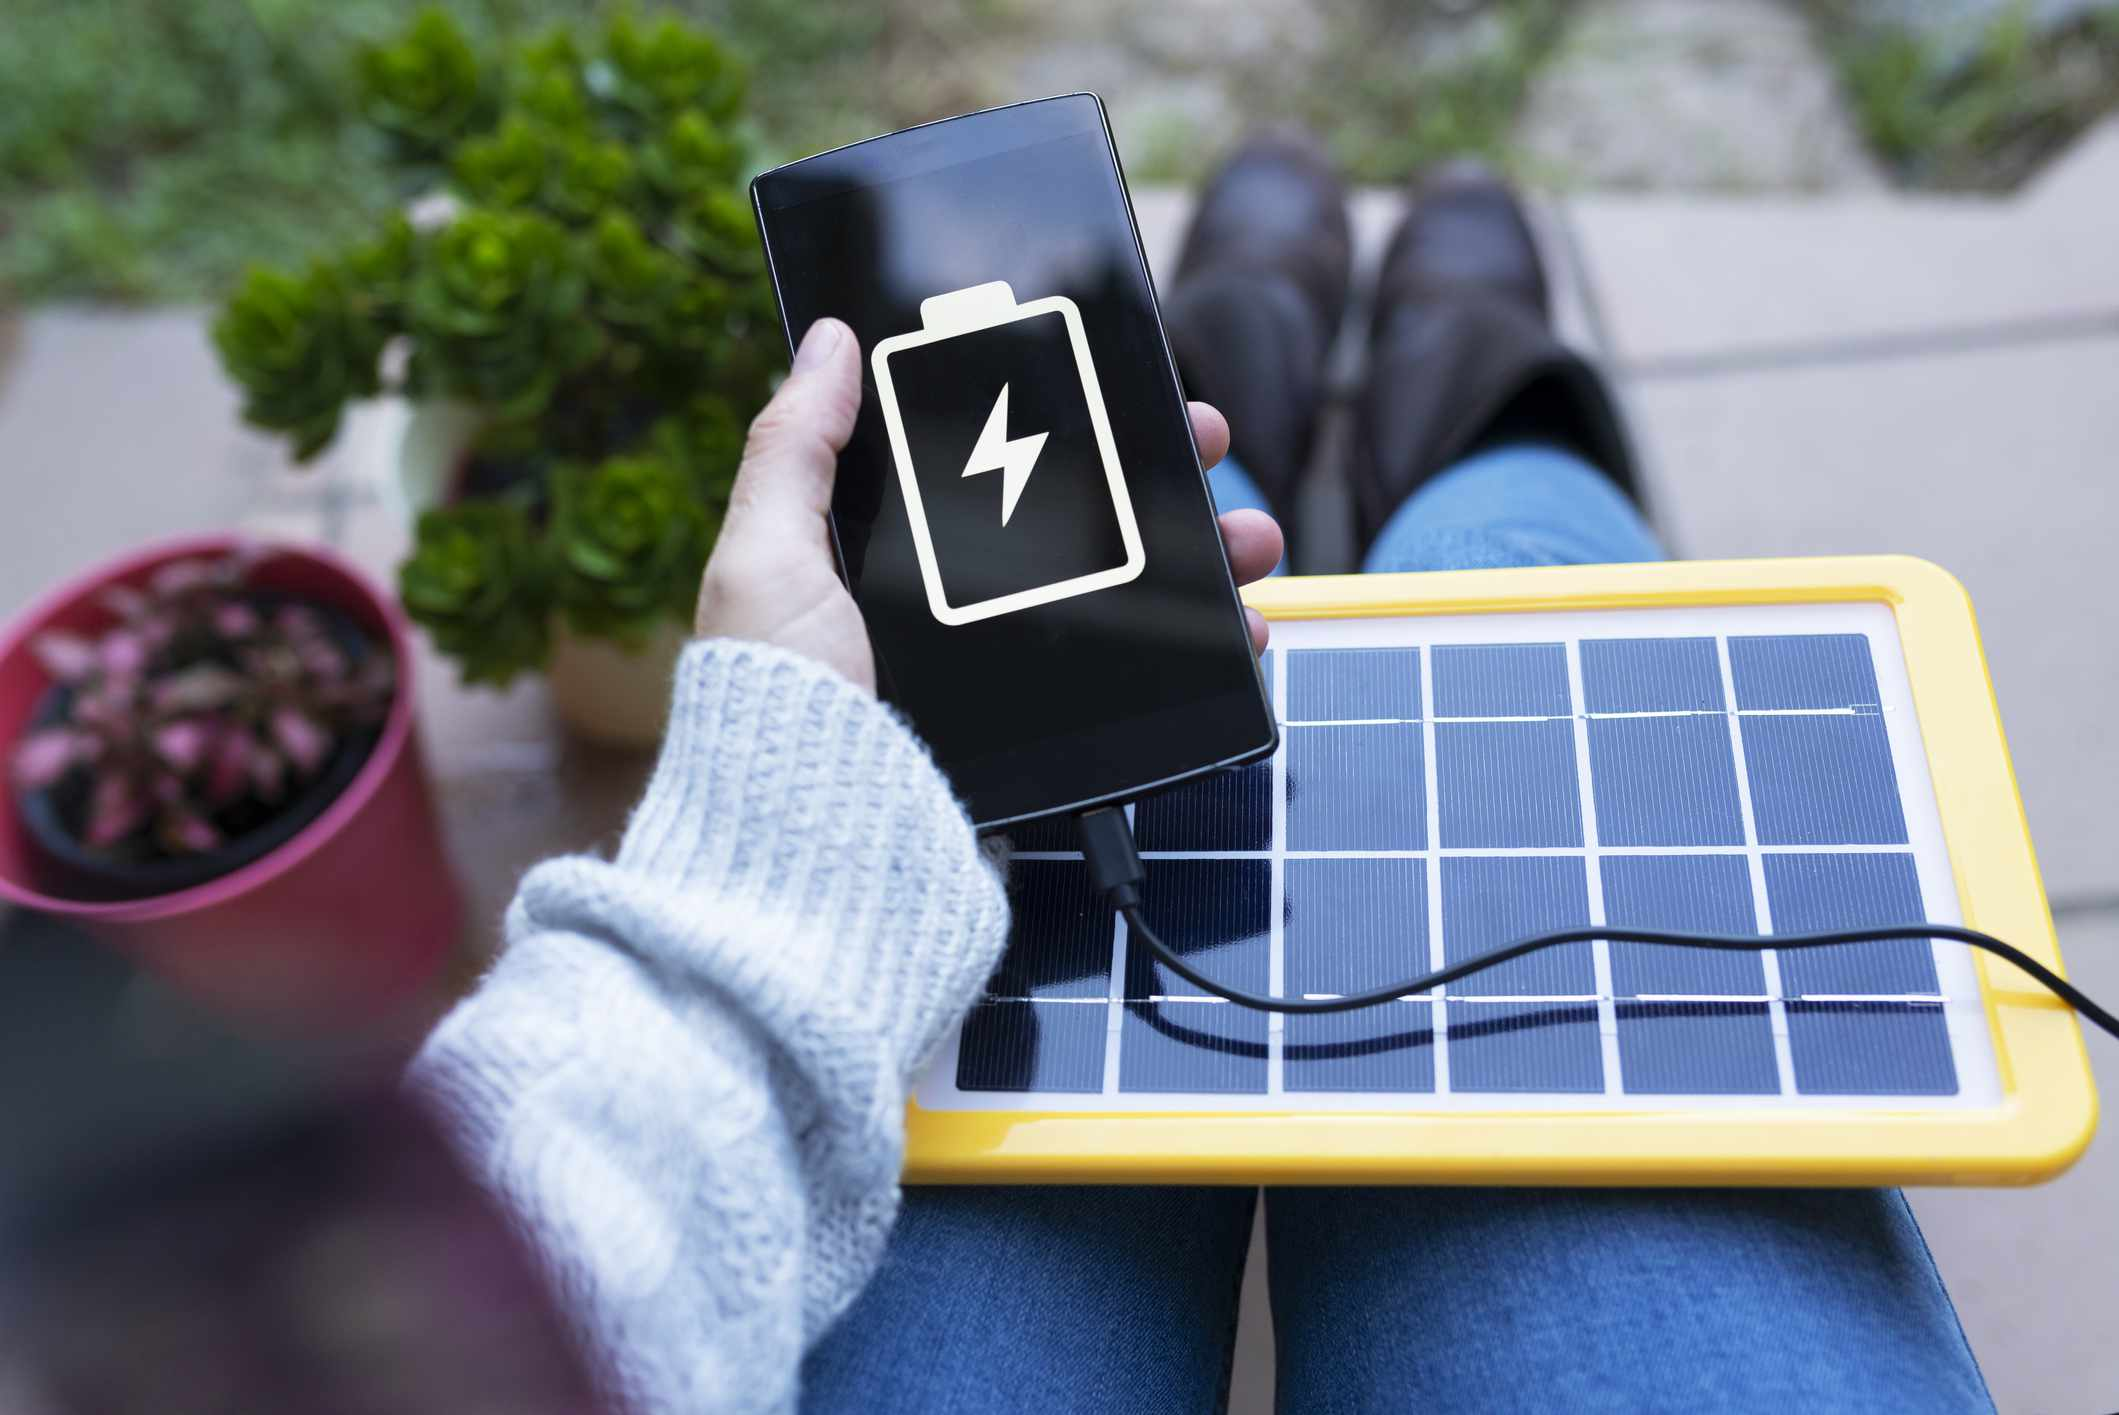 A cell phone plugged into a solar power renewable energy source.